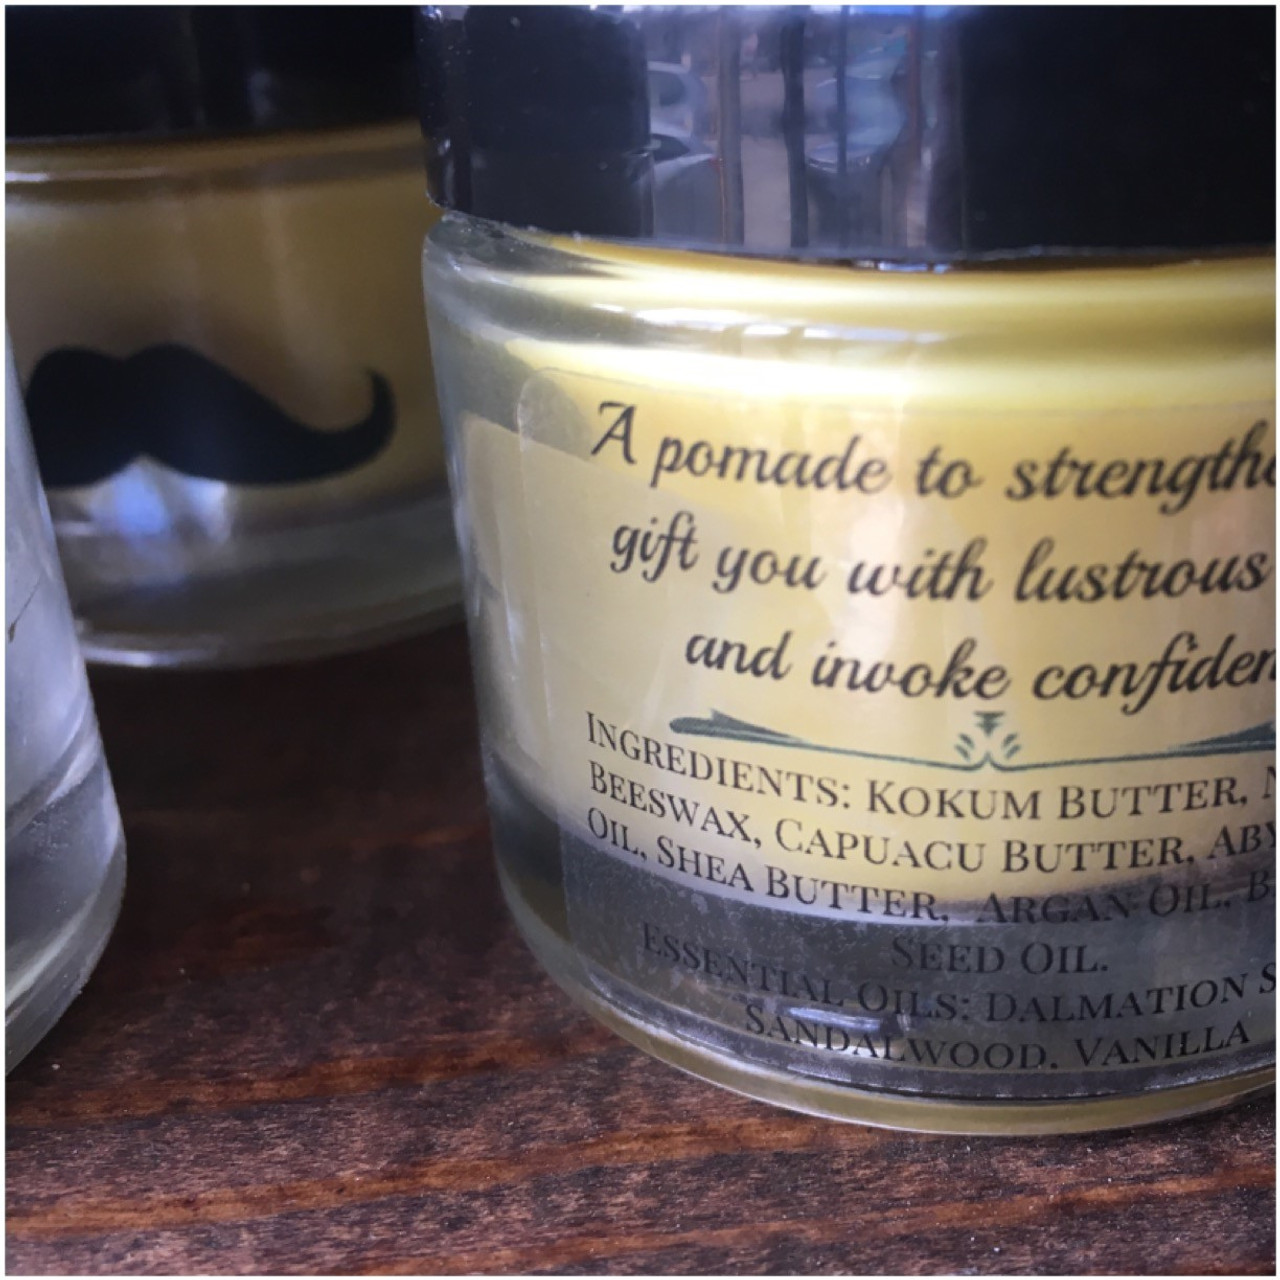 Mustache pomade, hair pomade, curl nourishment, A Pomade For The People. Ingredients: Kokum Butter, Unrefined Beeswax, Capuacu Butter, Argan Oil, Unrefined Shea Butter, Abyssinian Oil, Buriti Oil,Brocolli Seed Oil, Essential Oils of: Sage, Sandalwood, Vanilla